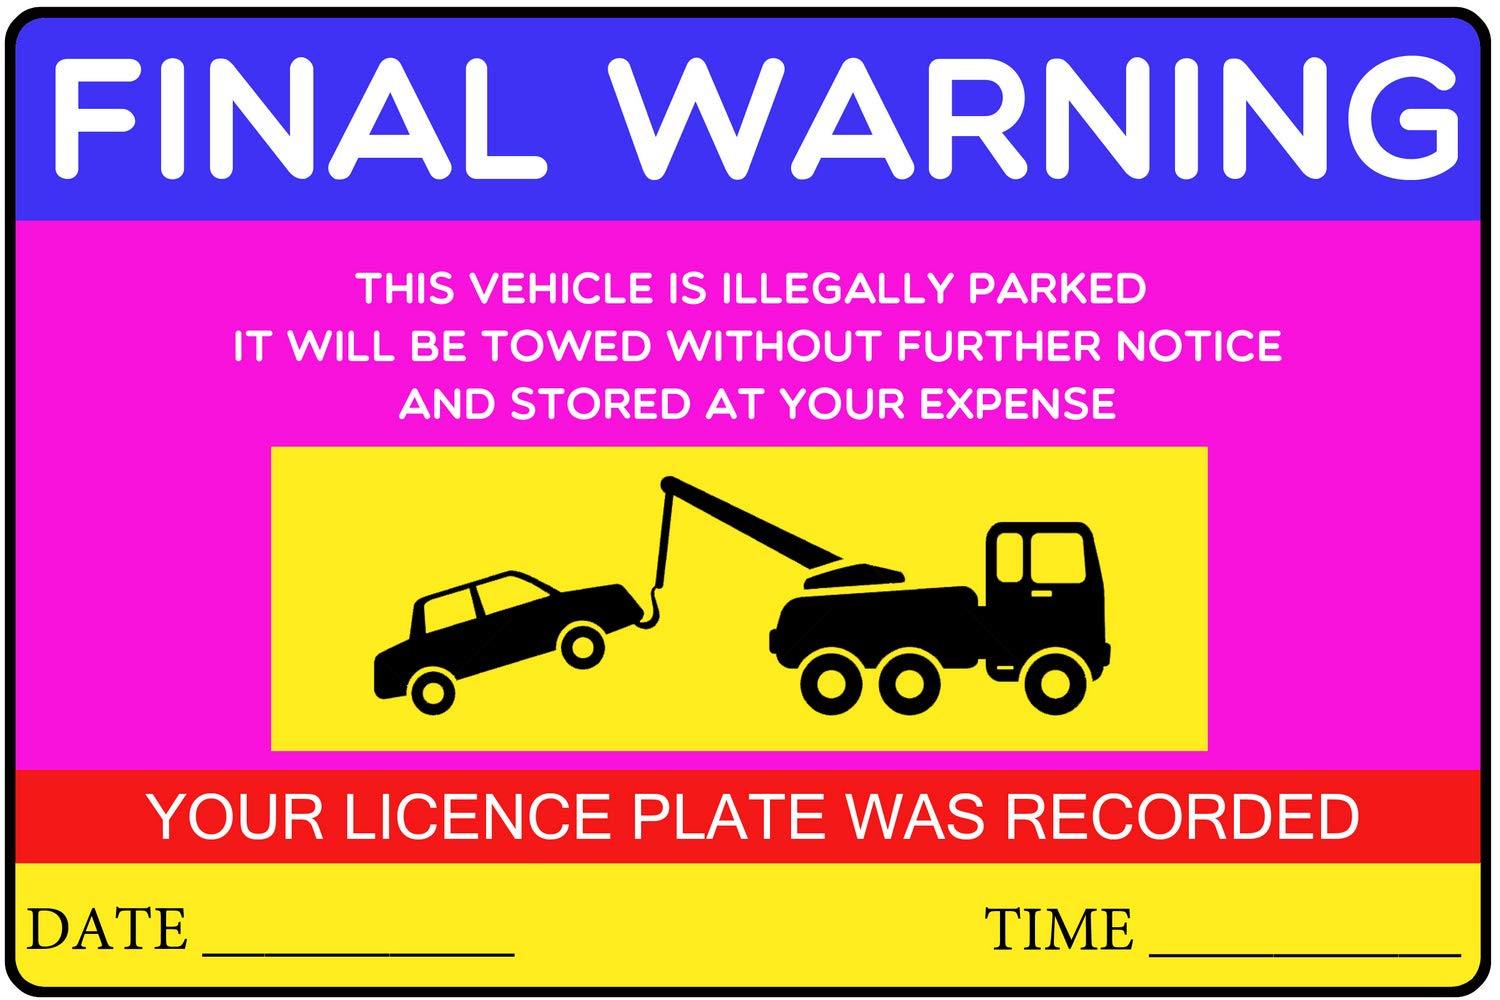 Private Parking Stickers Reserved No Permit Area Violation Warning Notice Label Sticker - 9x6 Inch - Pack of 1000, Magenta by PrintValue